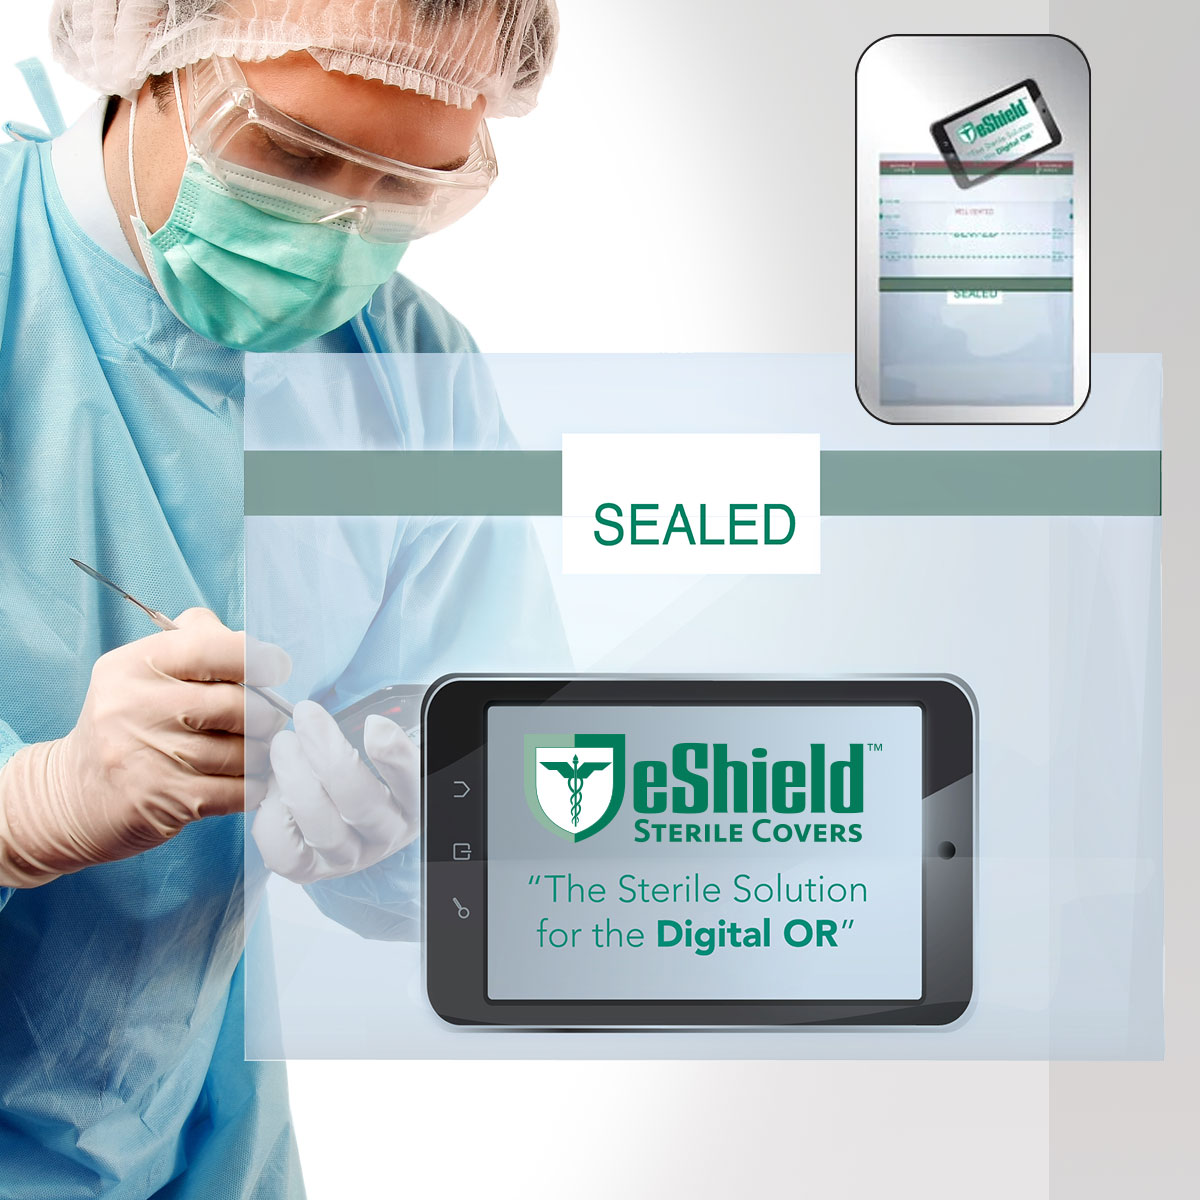 02A-eShield-Sterile-Electronic-Cover-Phone-Web-2